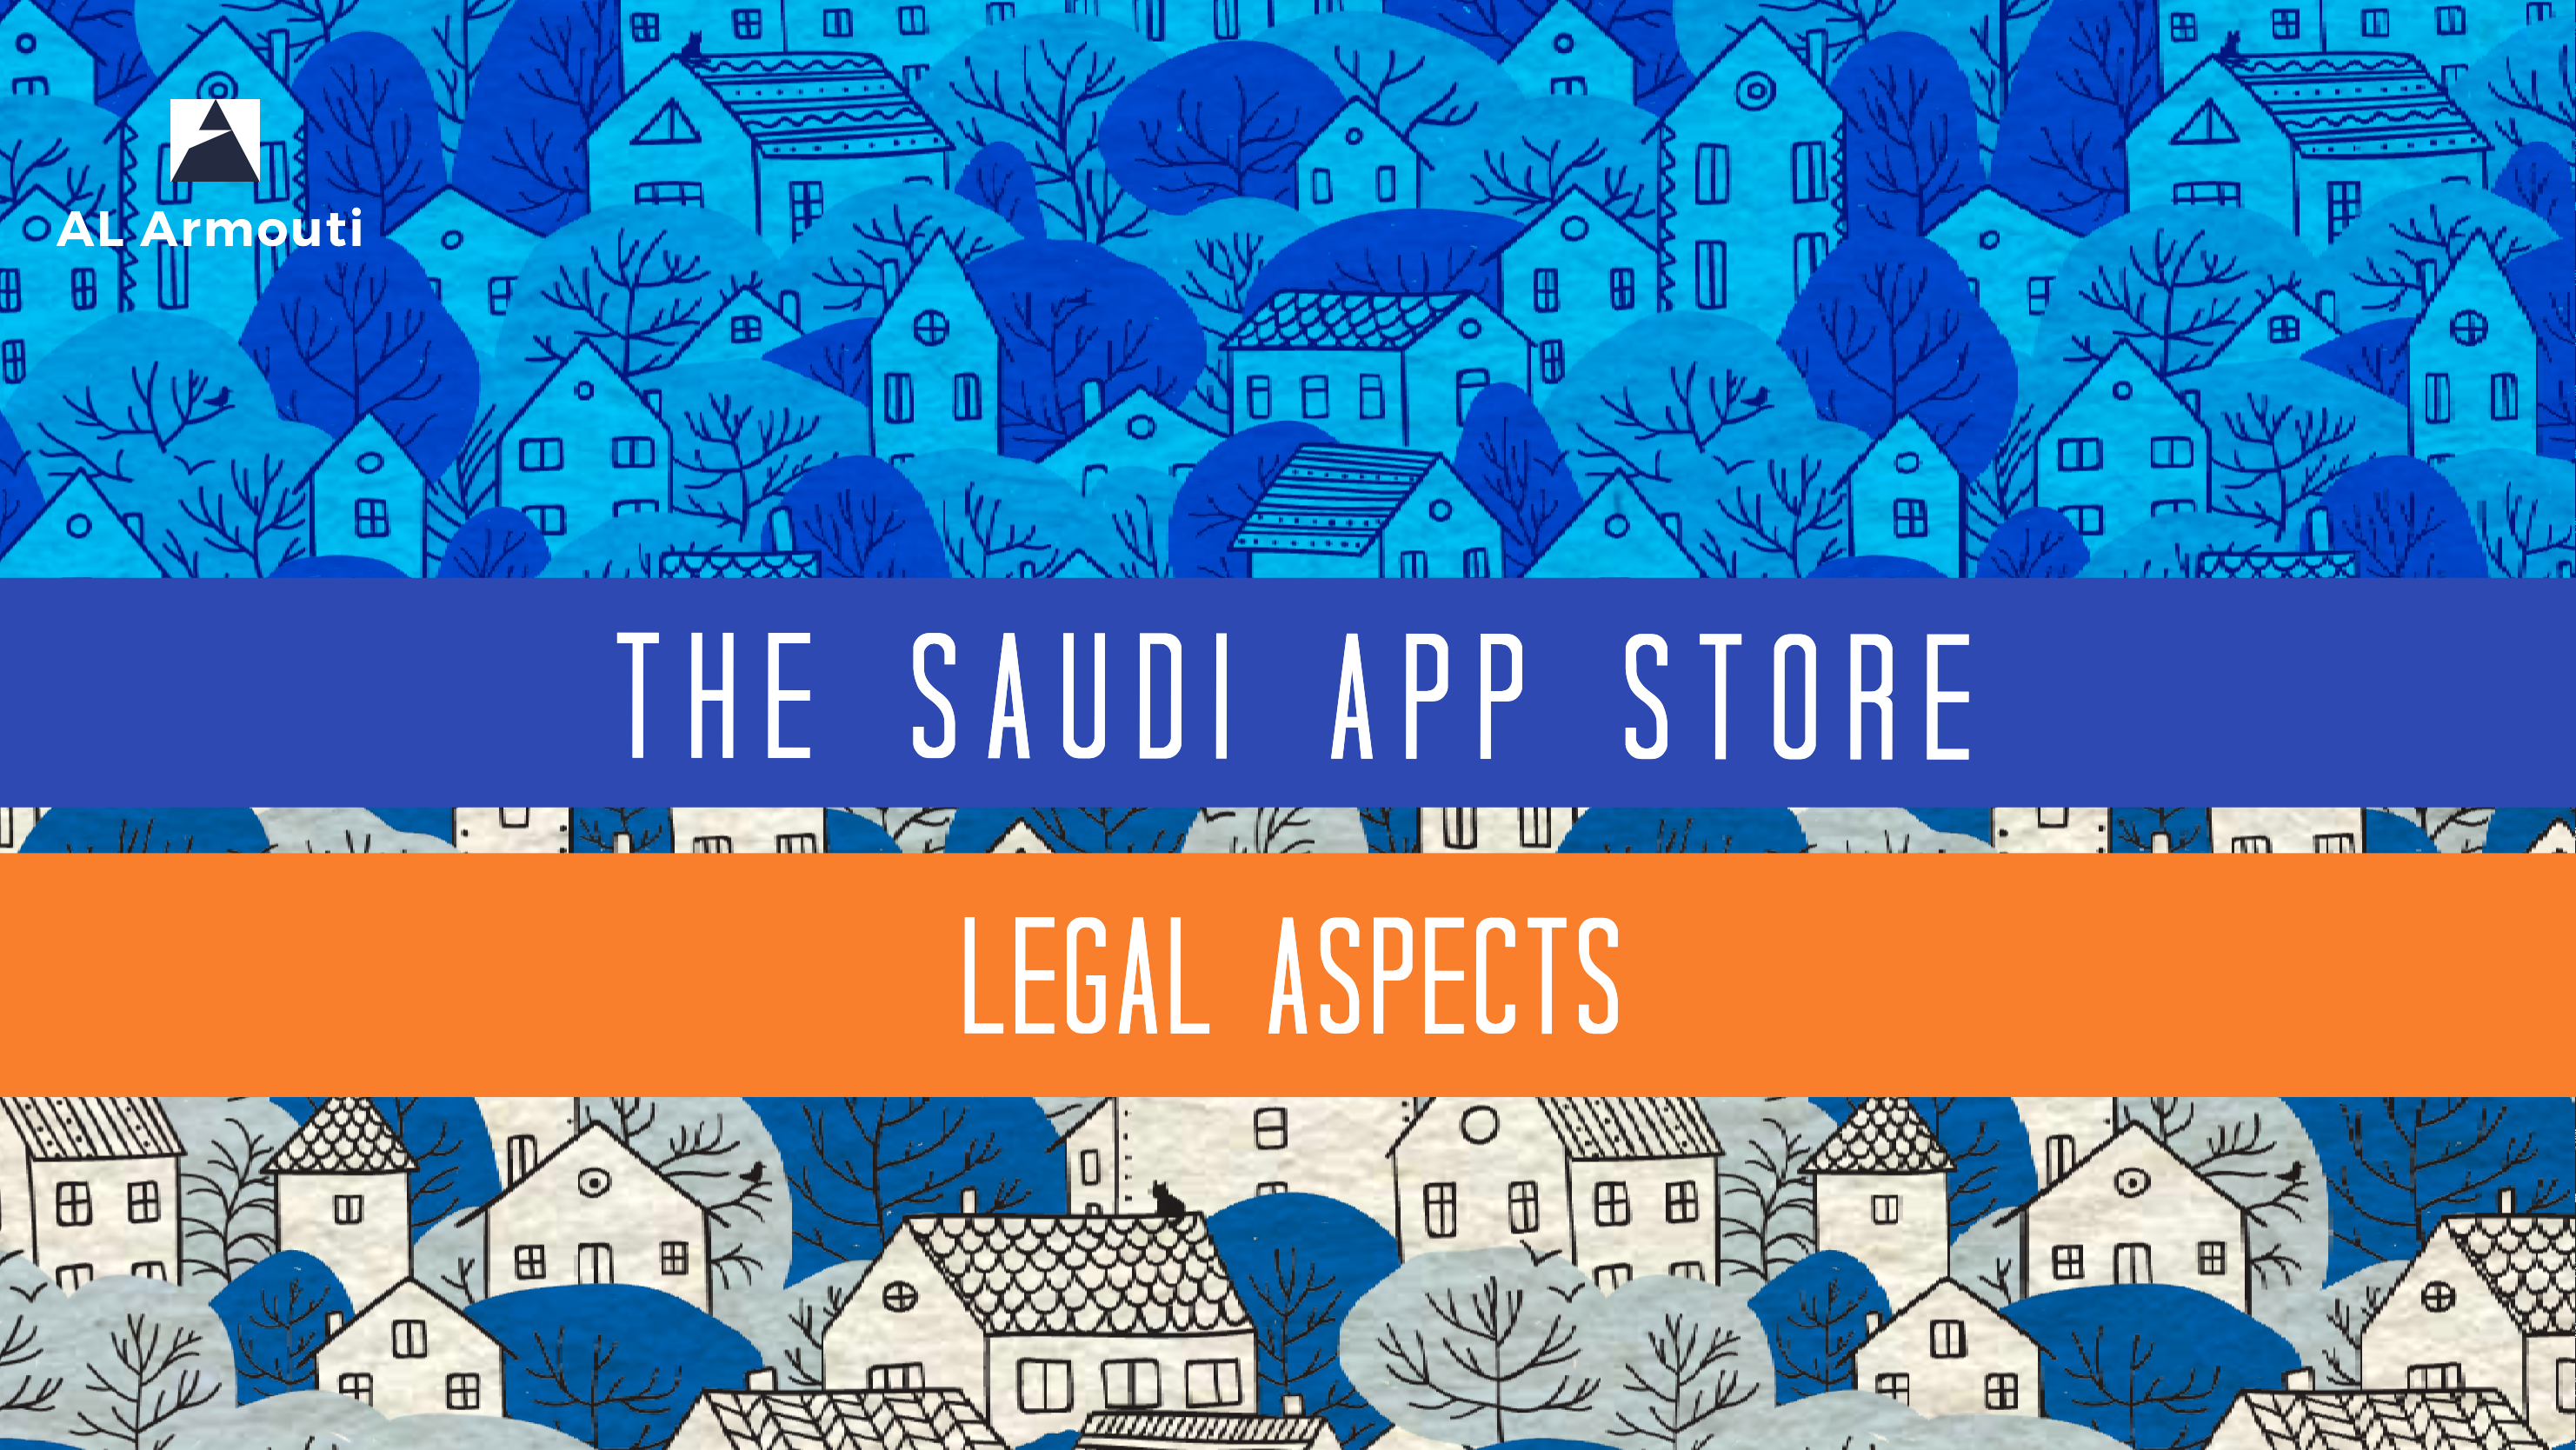 The Saudi App Store: Legal Aspects